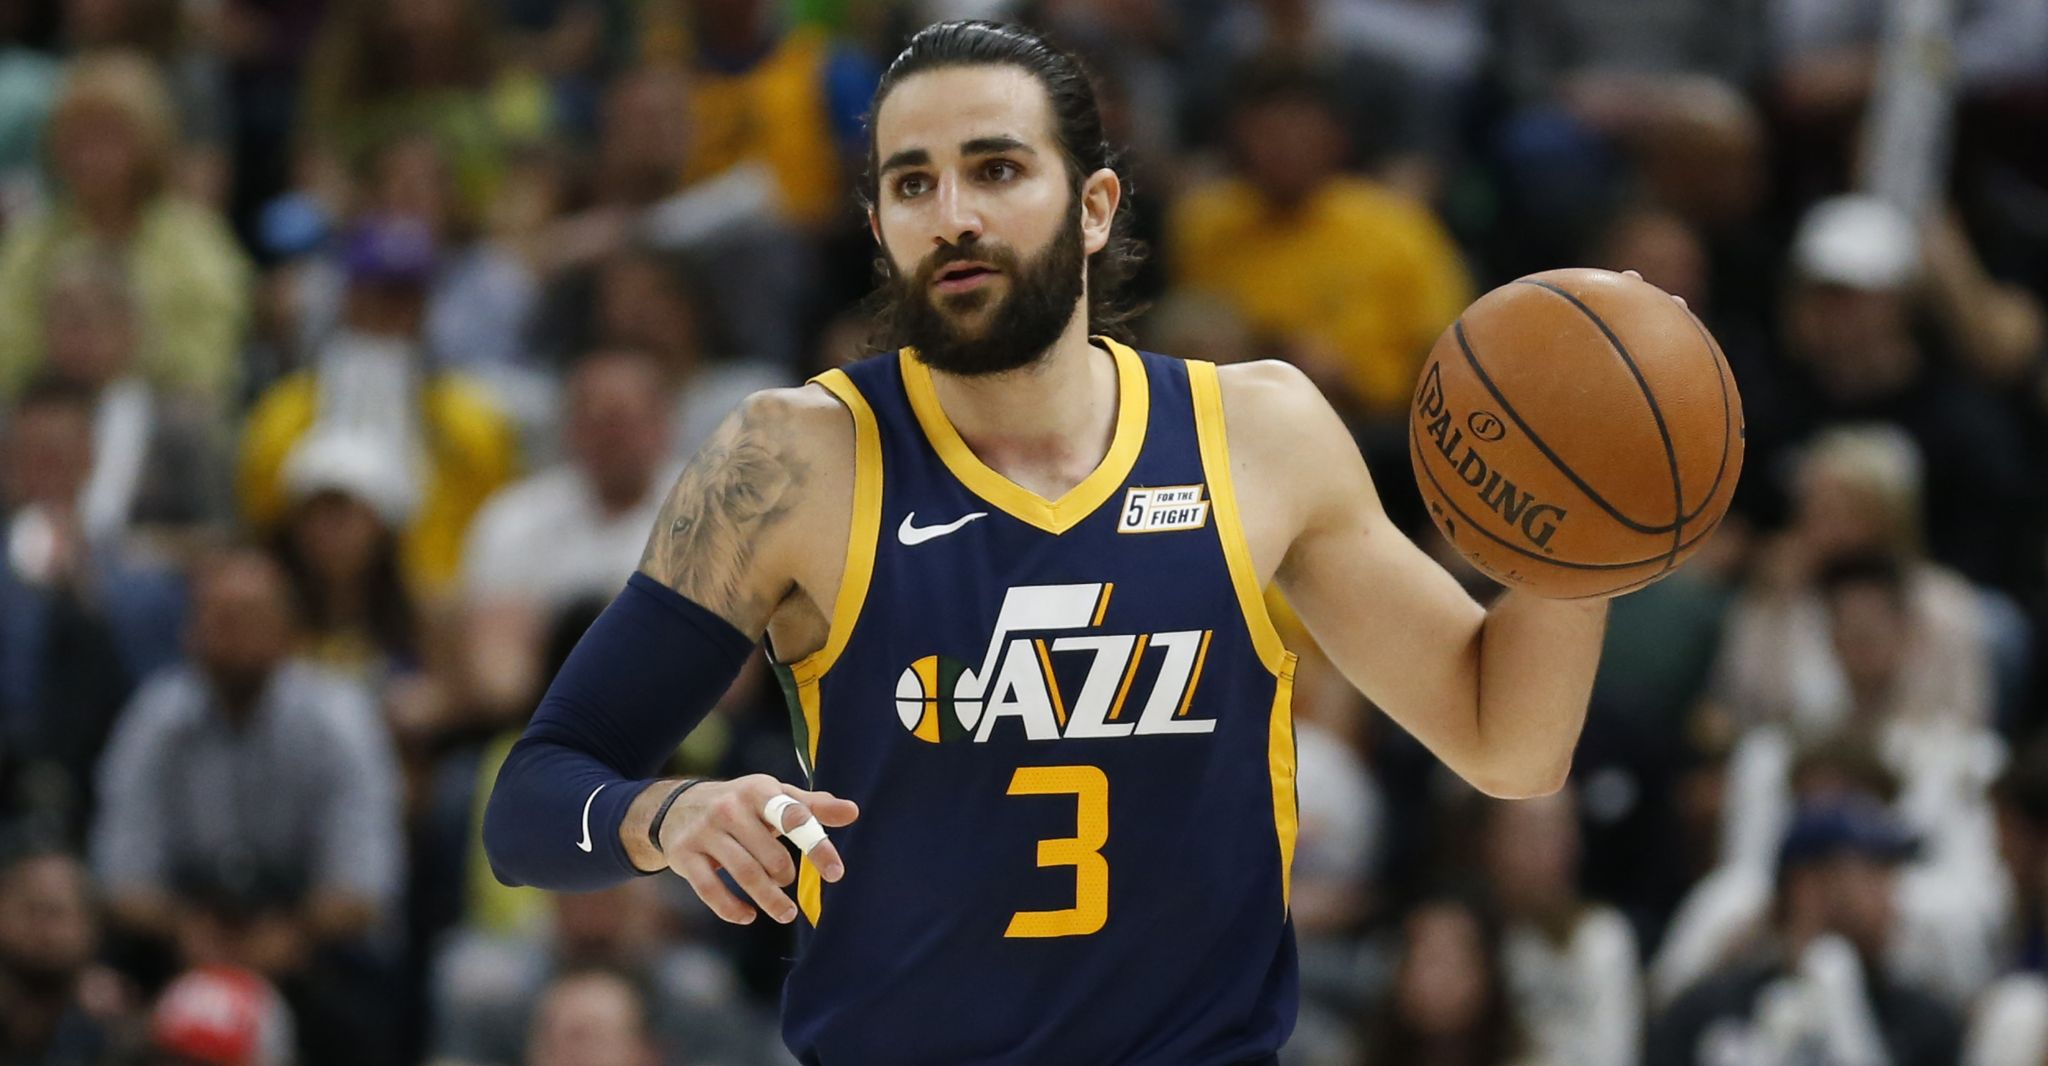 87176d8b056 Rockets prepare for formidable test in Jazz s Ricky Rubio - Houston  Chronicle